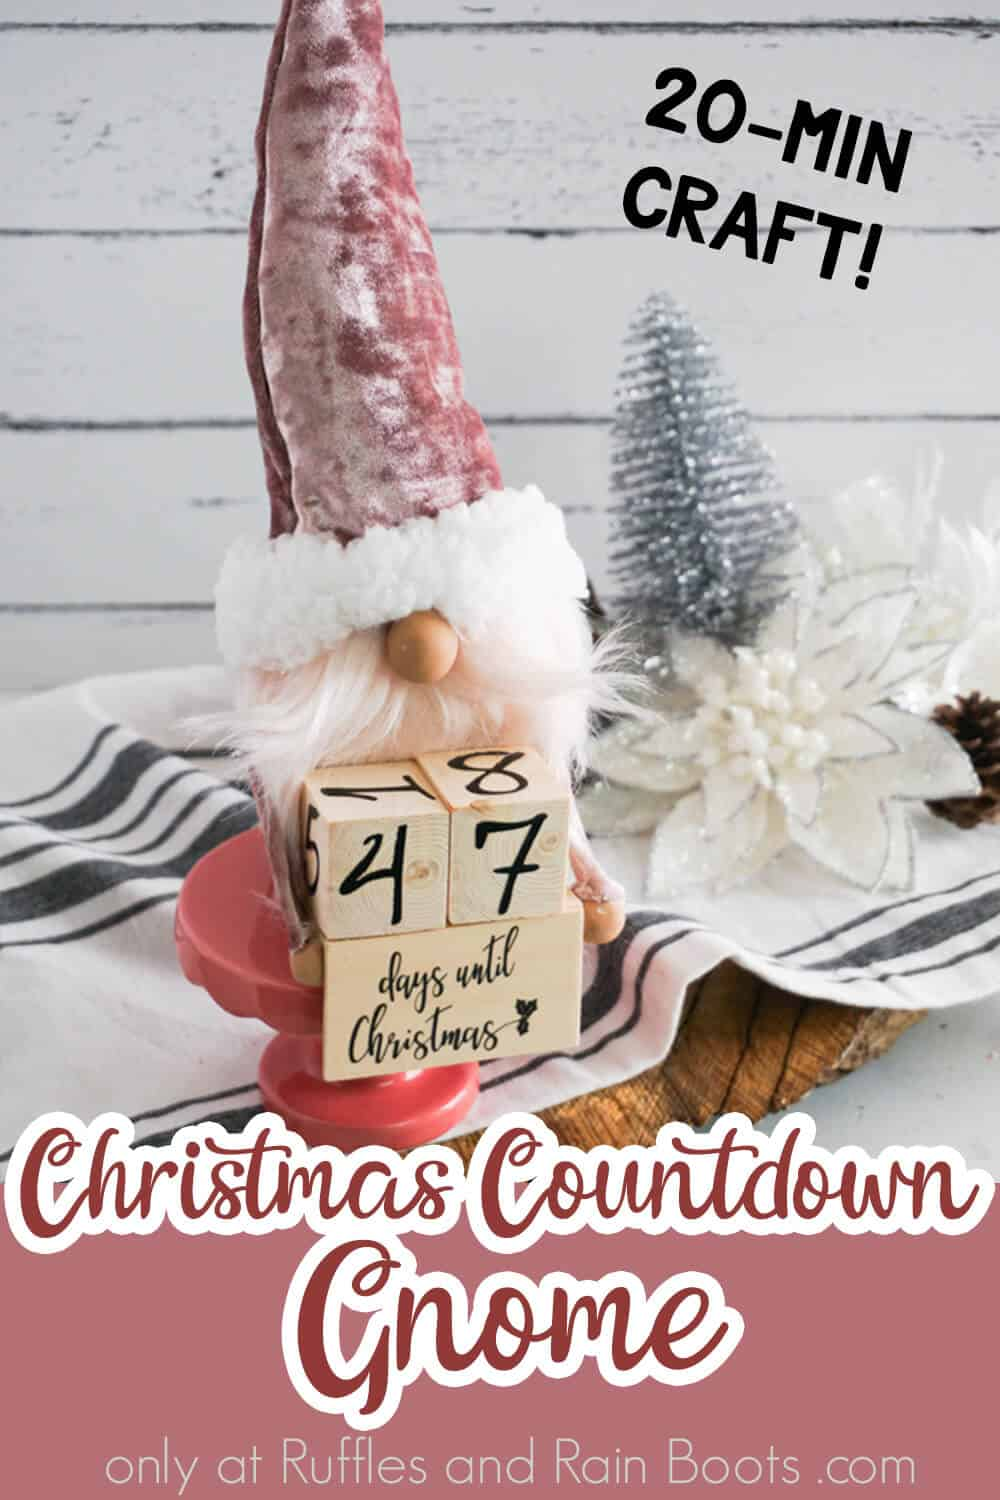 front view of no-sew christmas gnome pattern with text which reads christmas countdown gnome 20-min craft